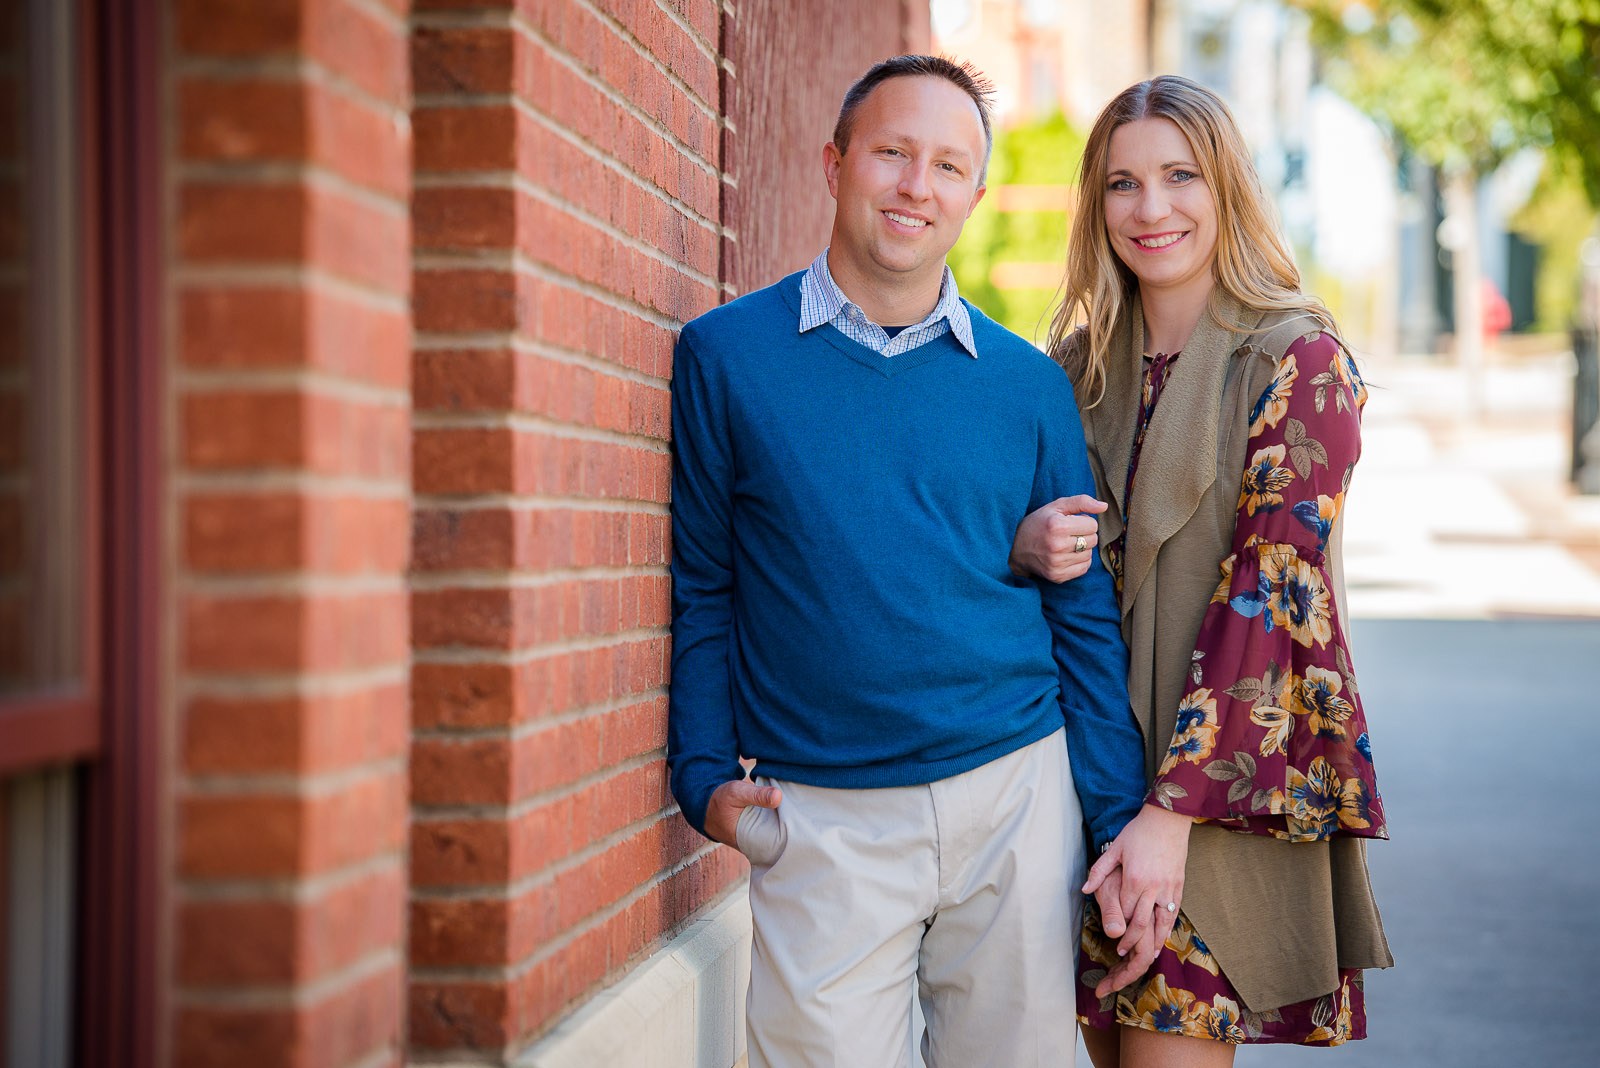 Eric_and_Christy_Photography_Blog_Megan_Nate_Engagement-19